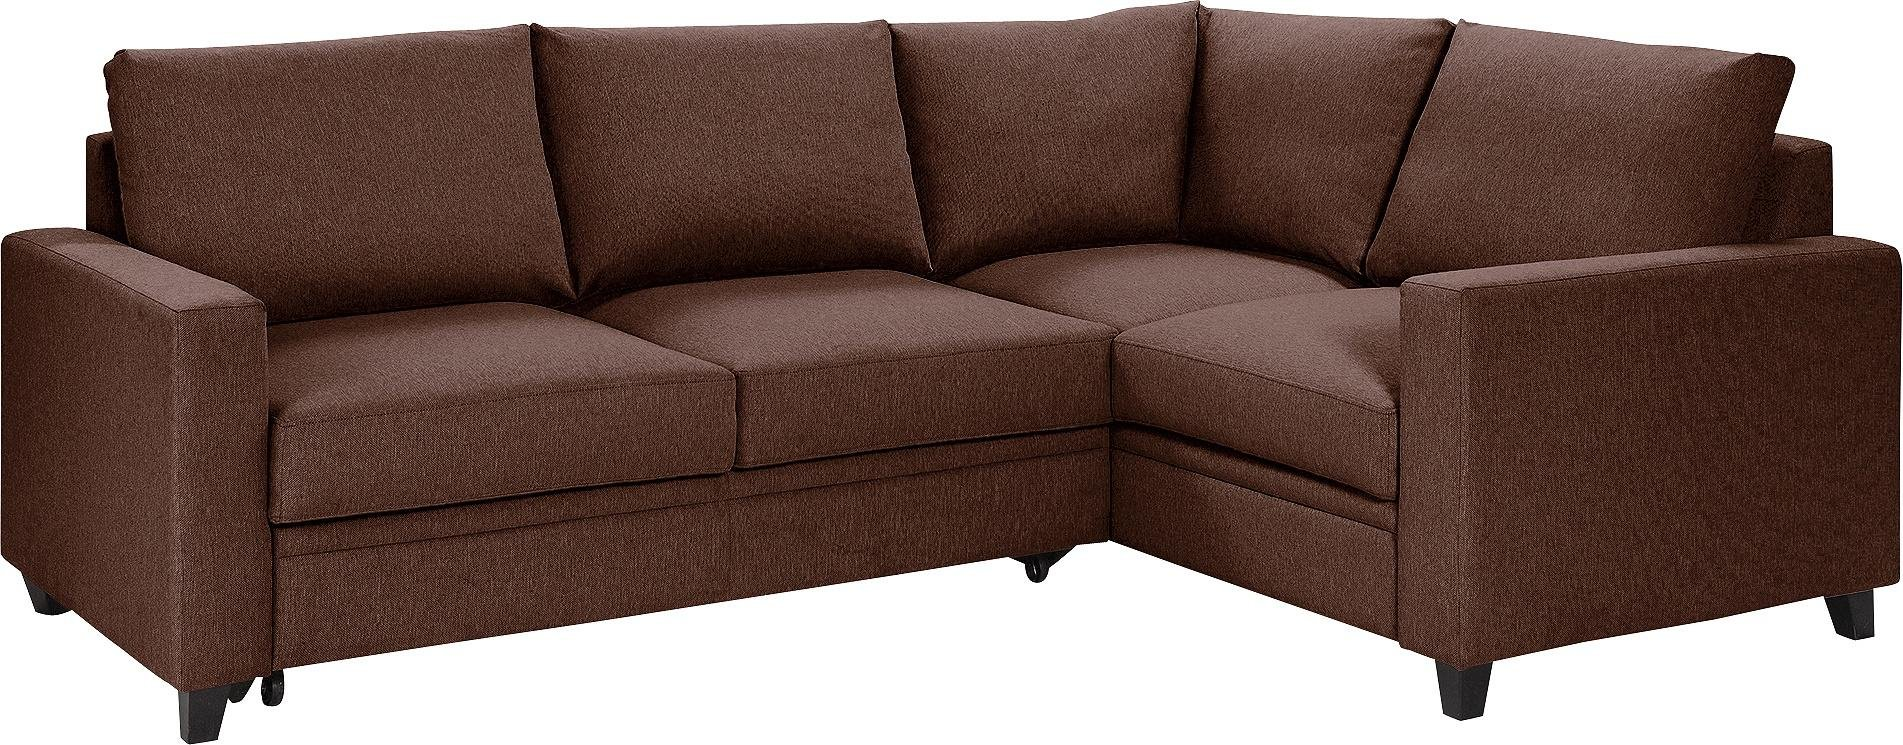 Argos Home Seattle Right Corner Fabric Sofa Bed - Brown